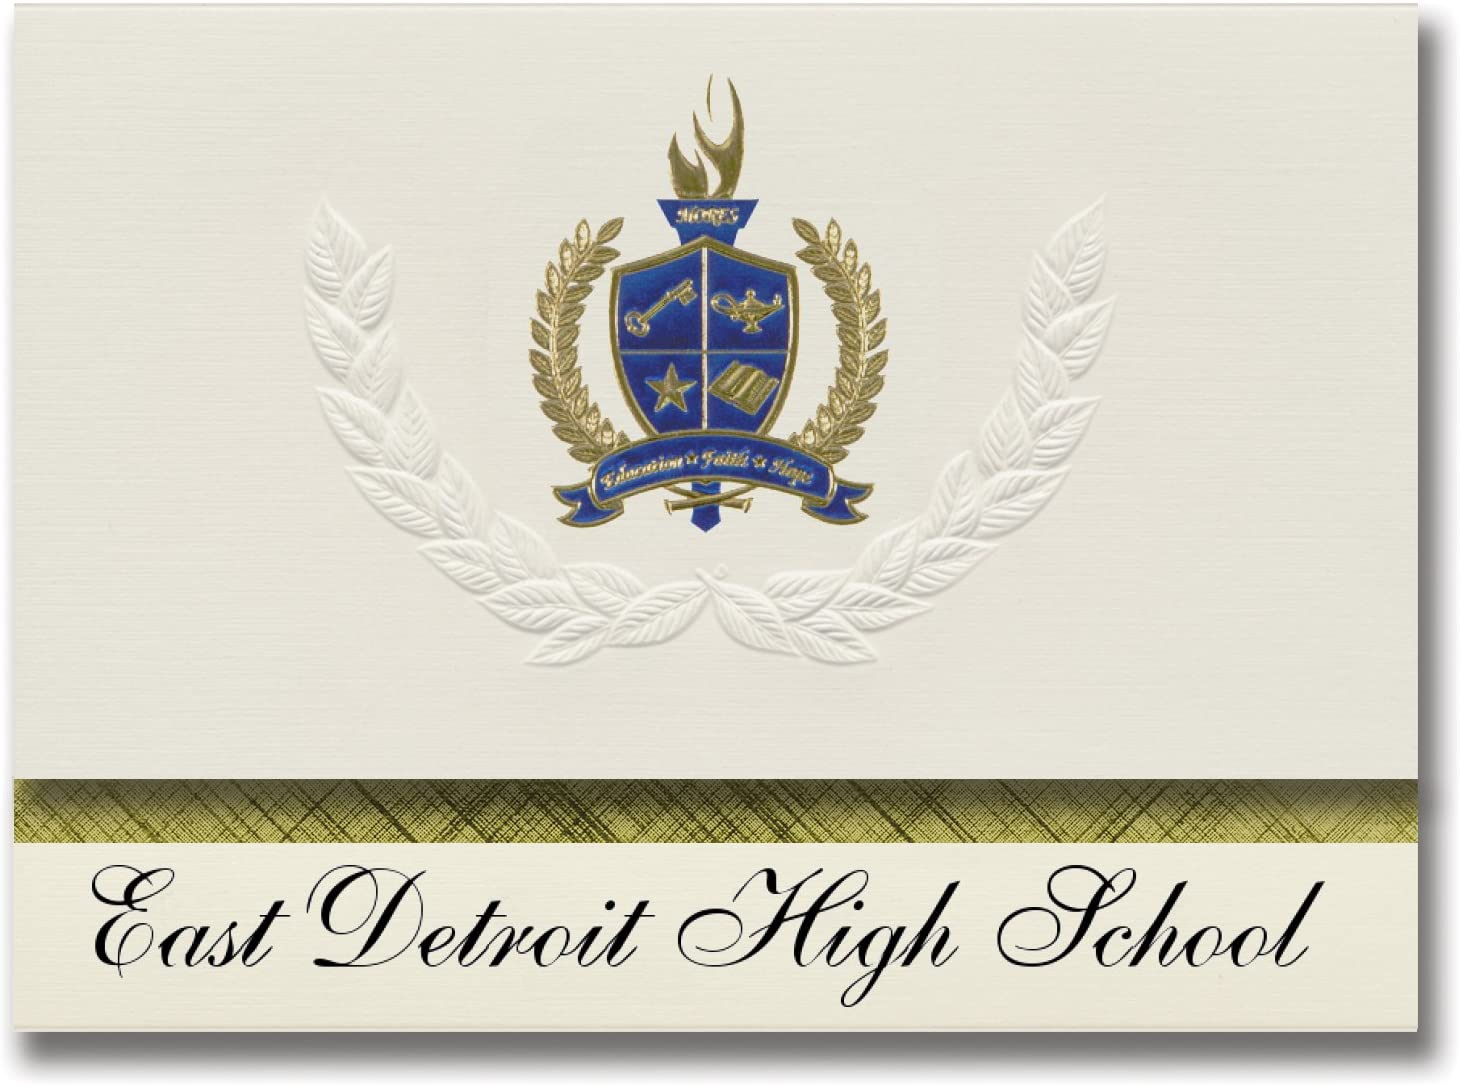 Signature Announcements East Detroit High School (Eastpointe, MI) Graduation Announcements, Presidential style, Elite package of 25 with Gold & Blue Metallic Foil seal